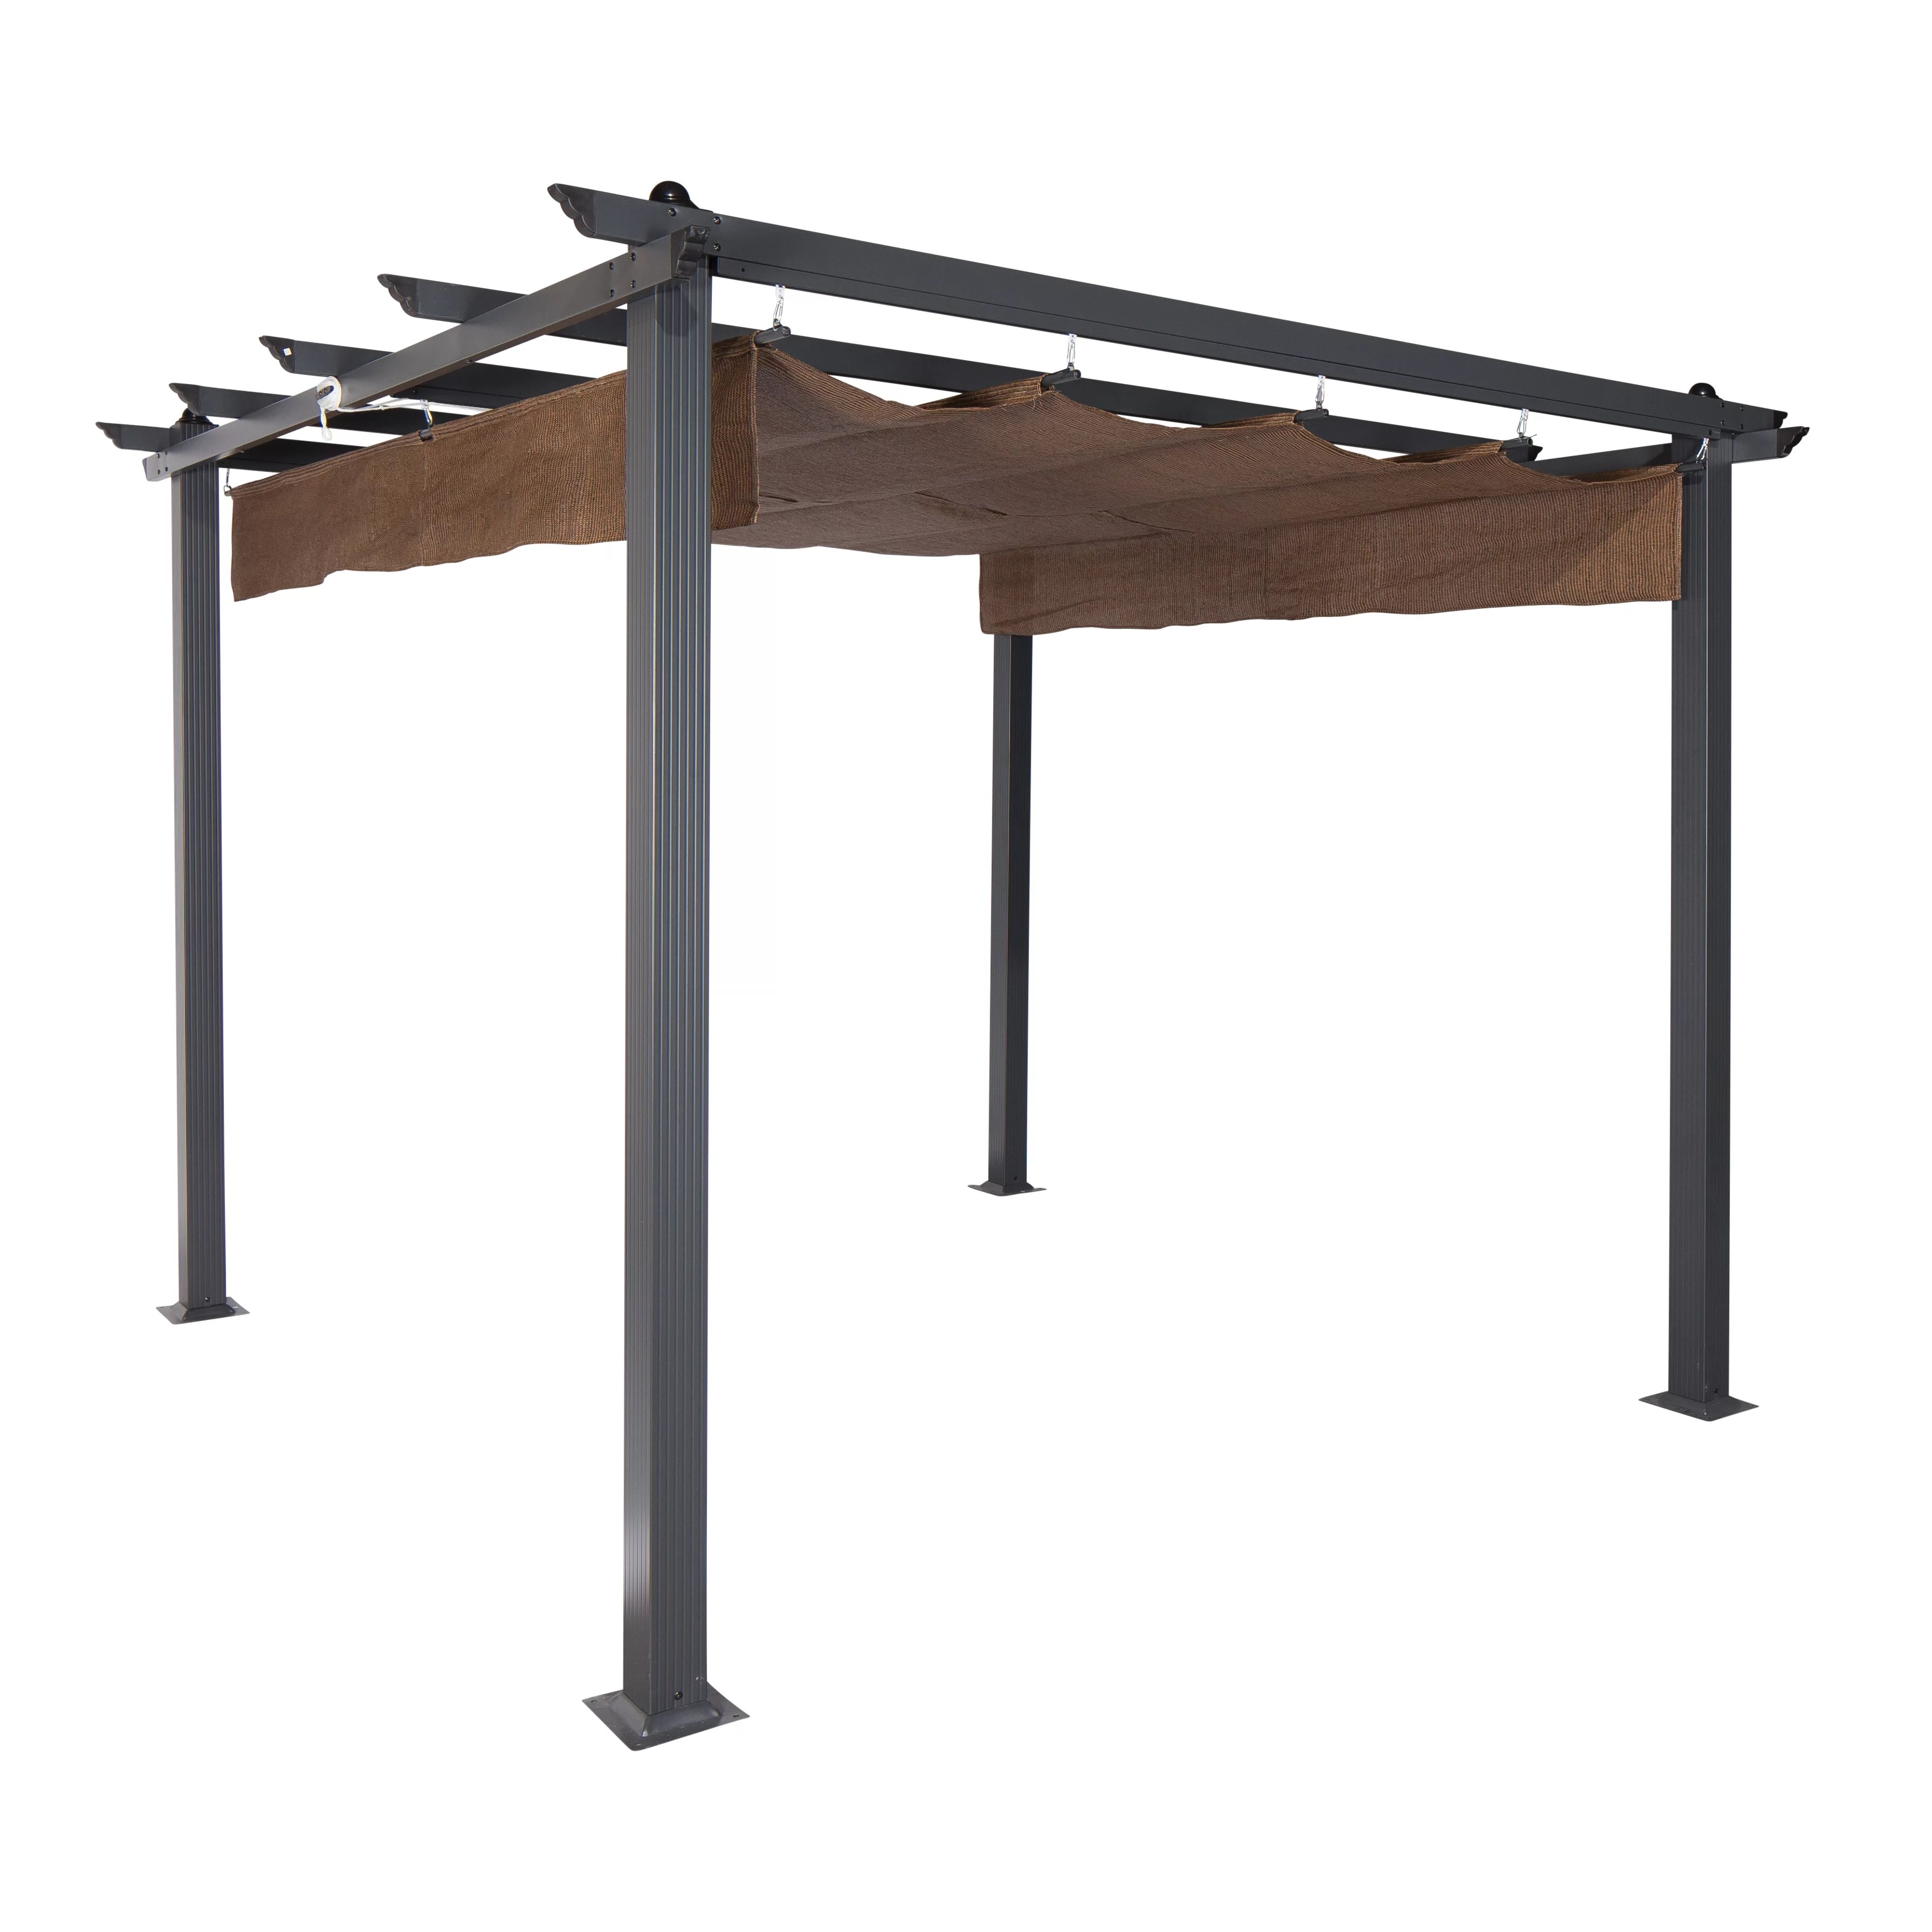 Pavillon Roller Coolaroo Constantine 9 Ft W X 9 Ft D Pergola And Reviews